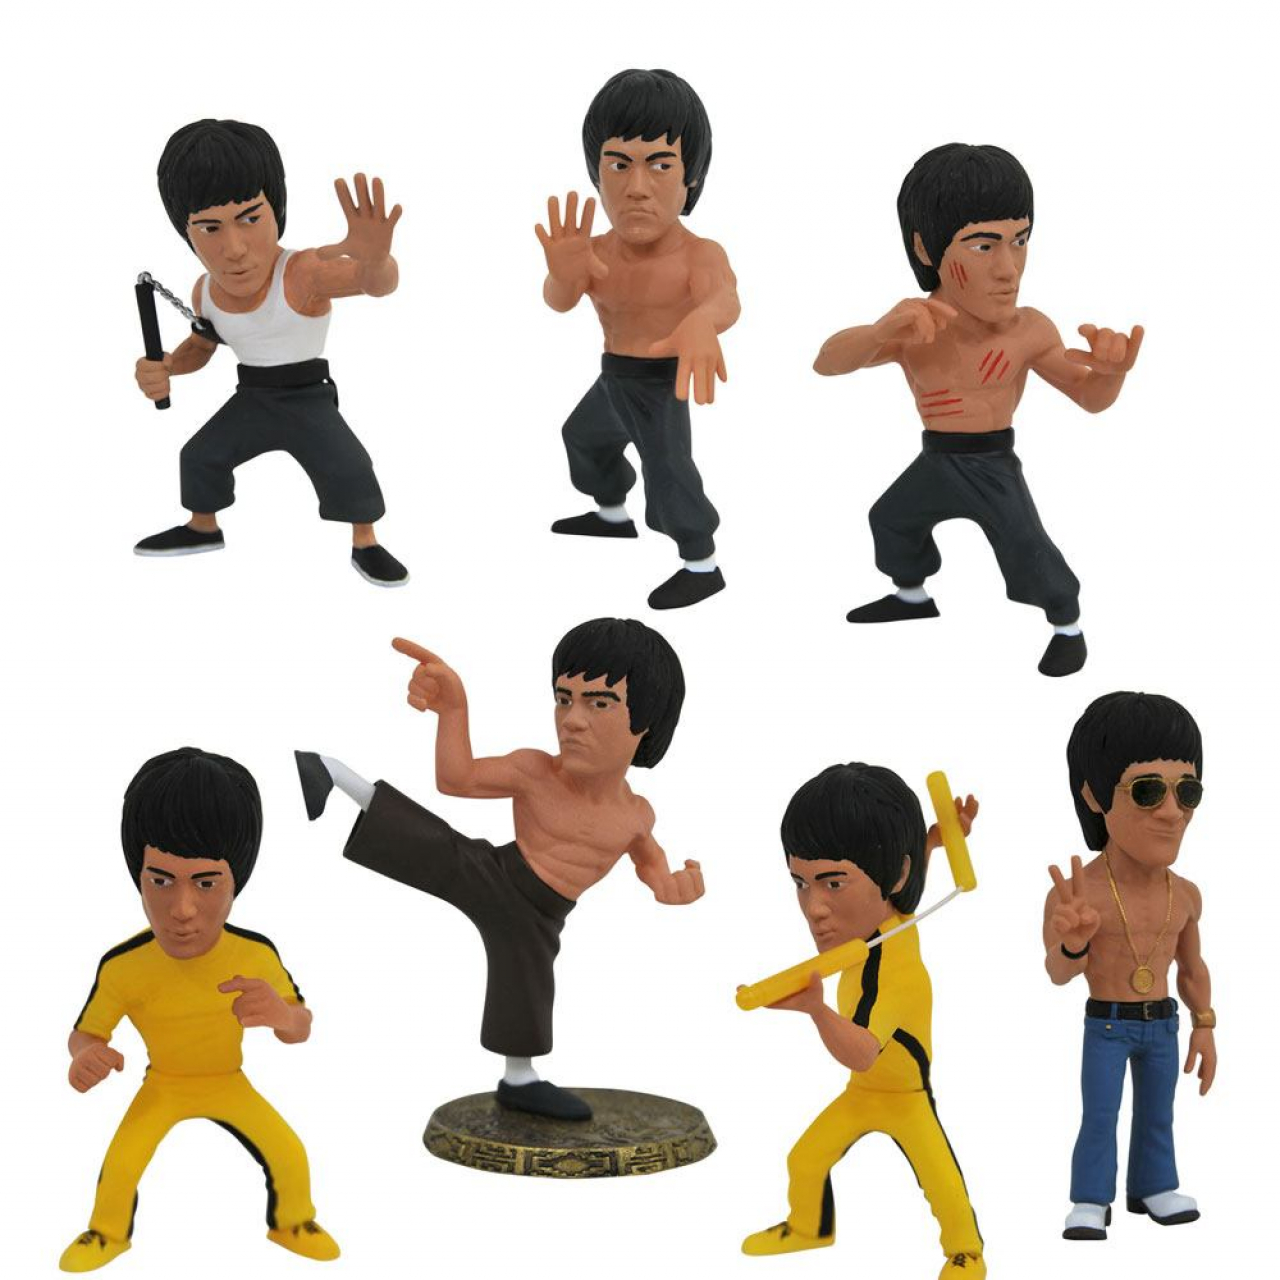 Bruce Lee D-Formz PVC Mini Figures 8 cm Display (12)